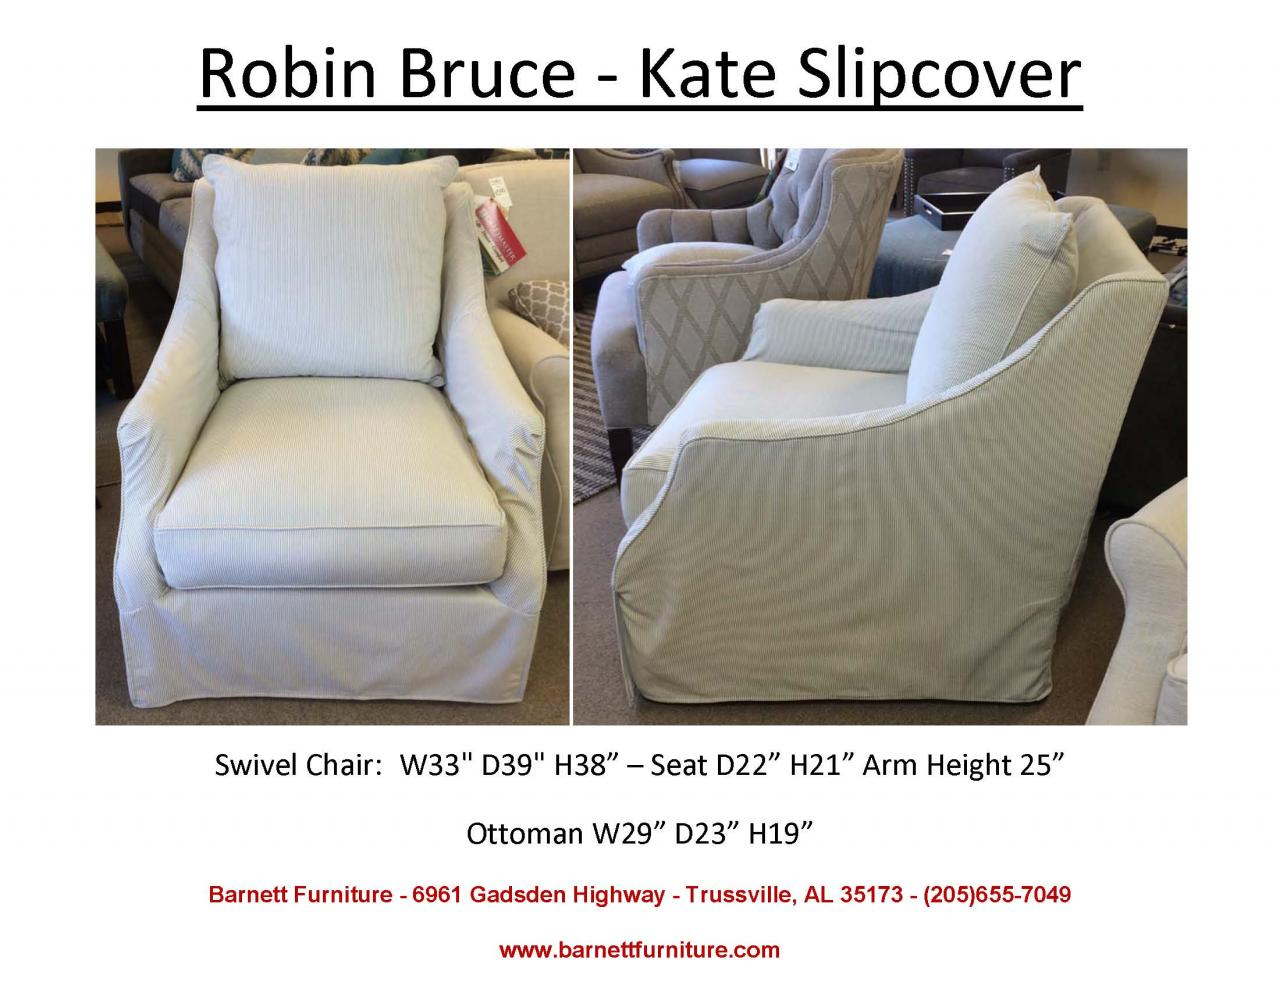 Charmant ... Glider Chair; Robin Bruce Kate Slipcover Swivel Chair ...